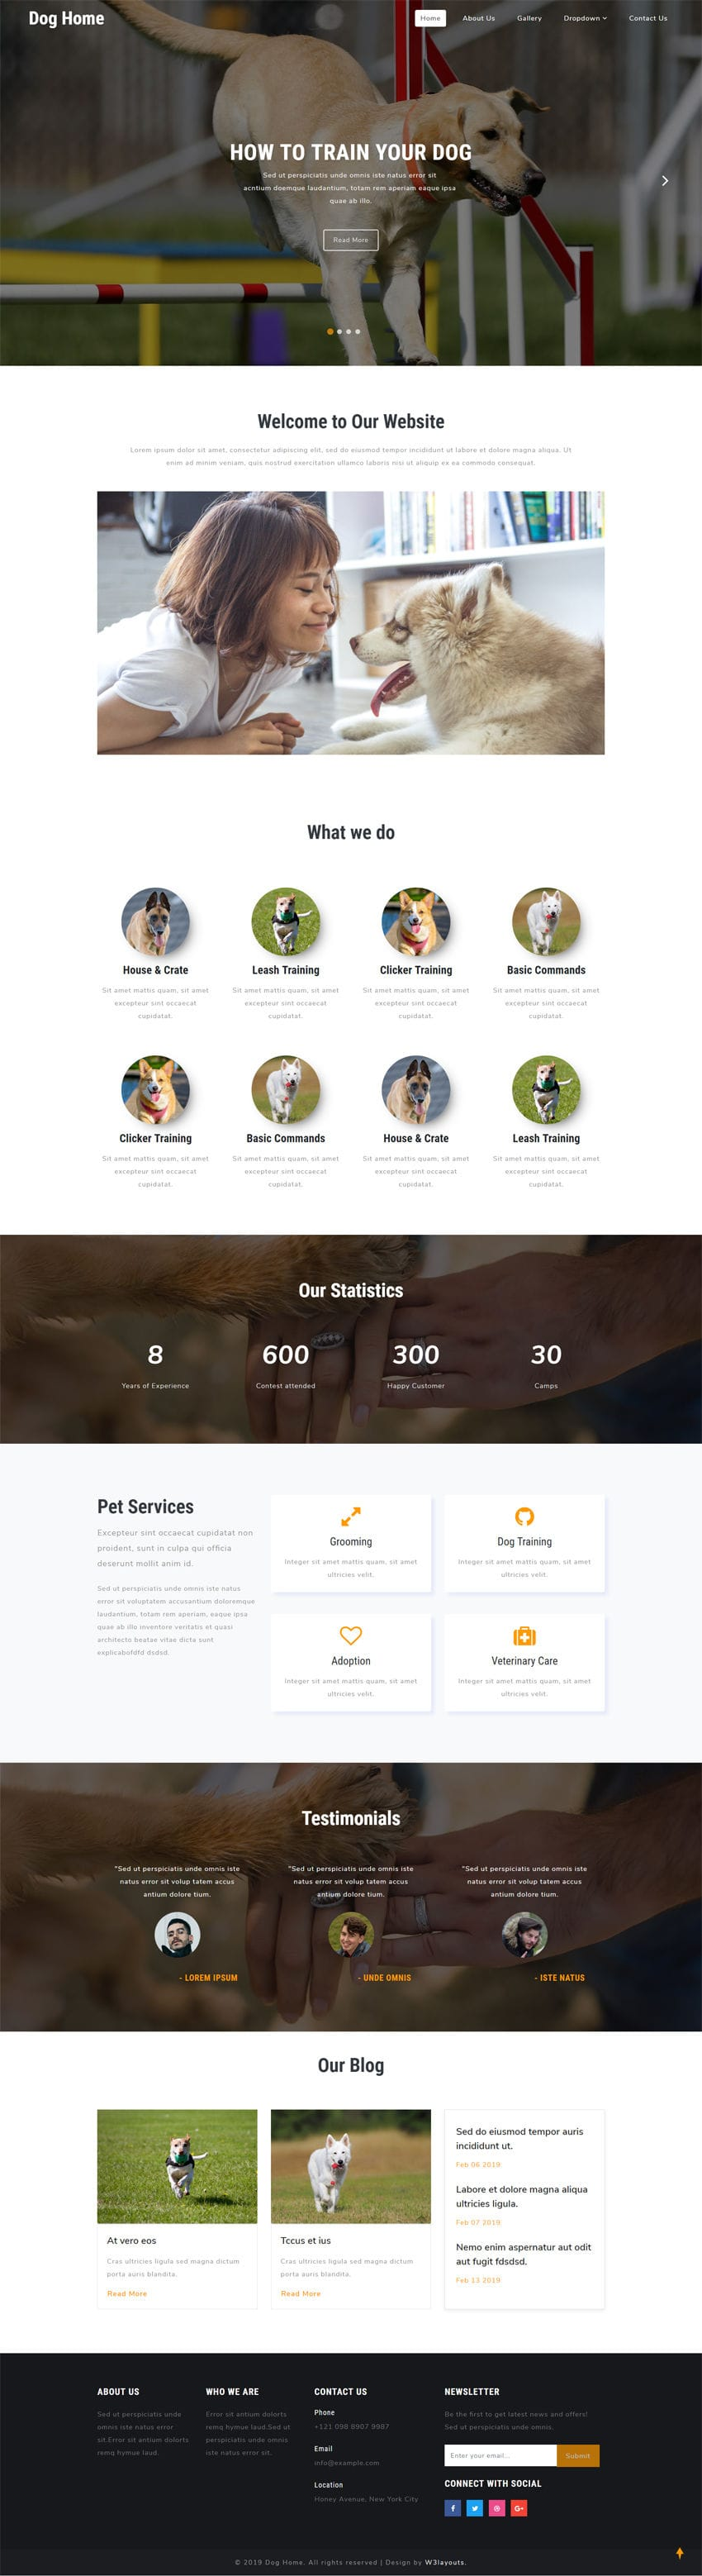 Dog Home is an HTML web template for websites related to animals & pets.